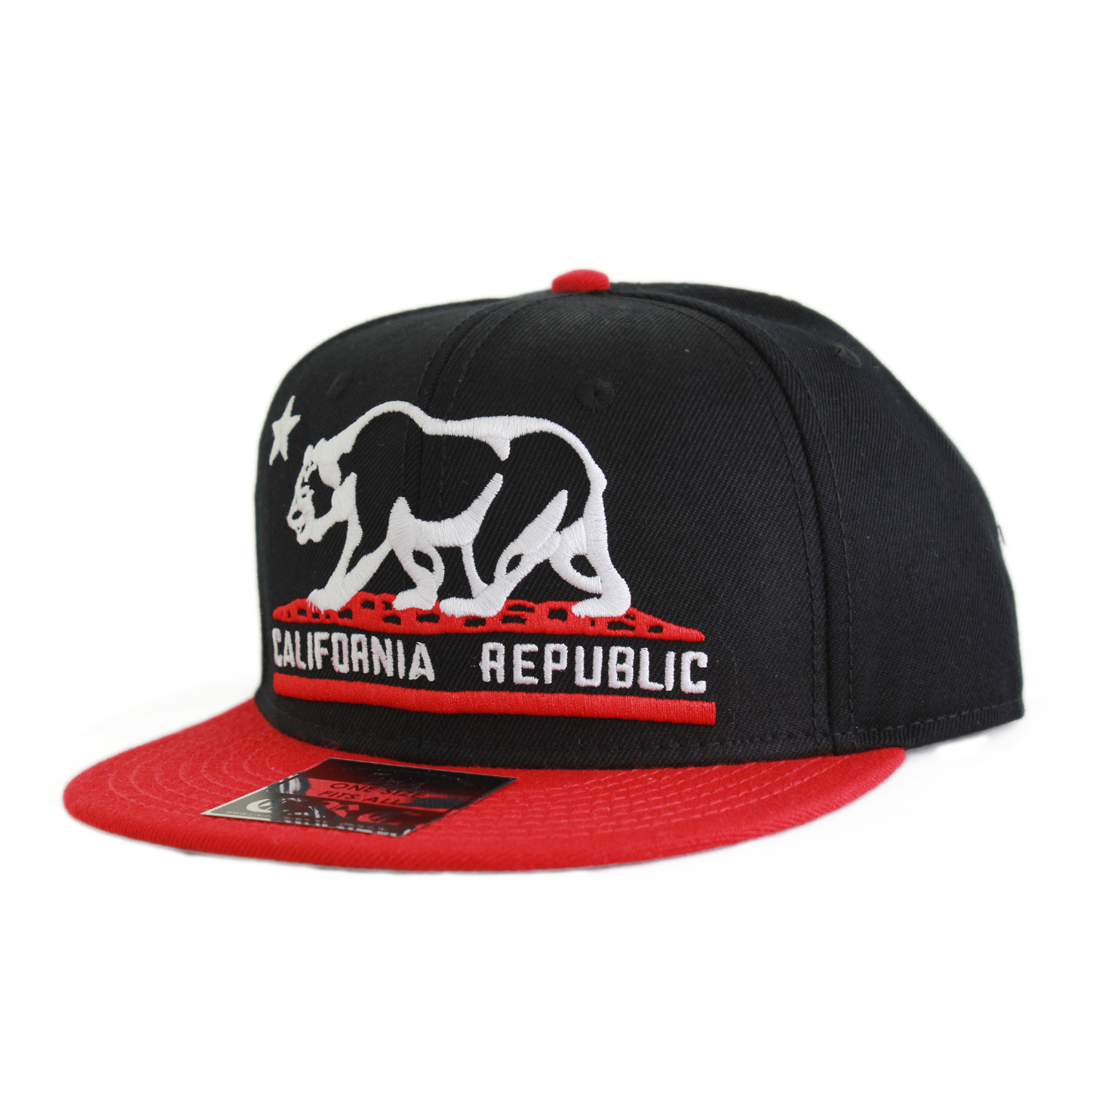 ad31a185 California Republic Embroidered Bear Flag Flat Bill Snapback Hat ...